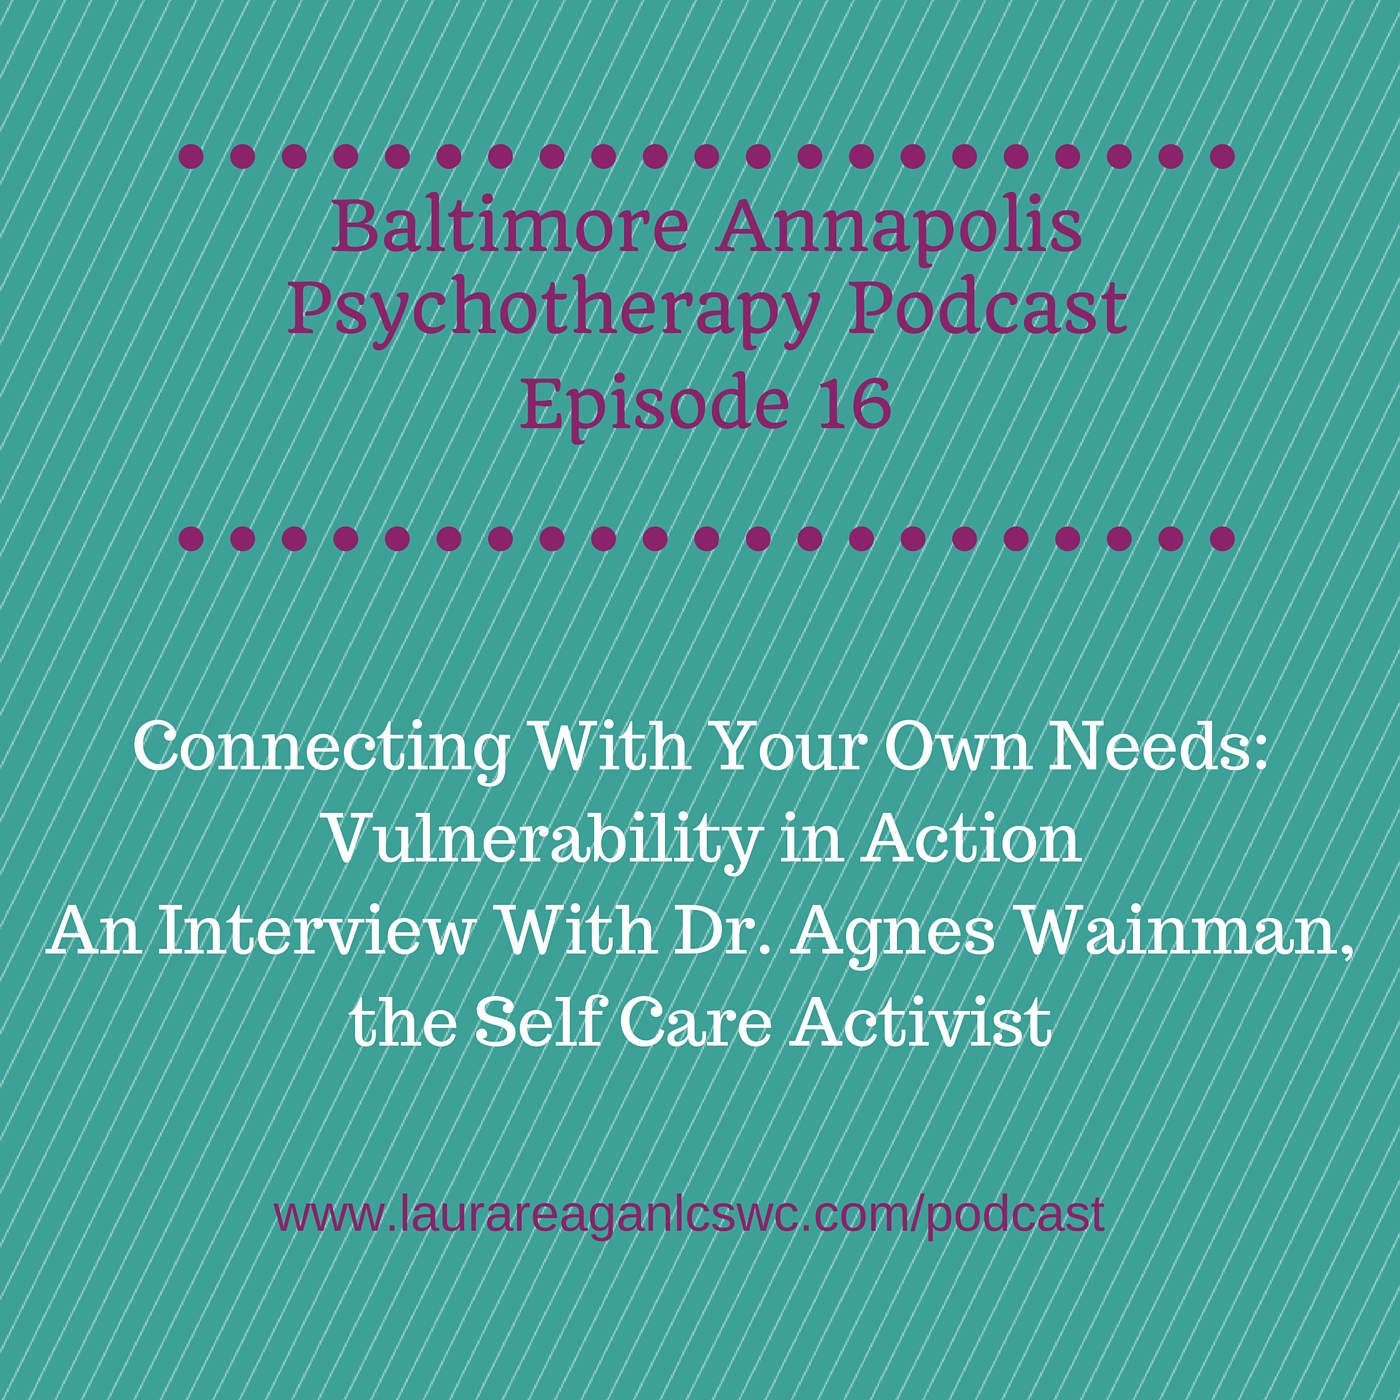 CLICK ON THE IMAGE TO LISTEN TO PODCAST EPISODE #16 WITH DR. AGNES WAINMAN